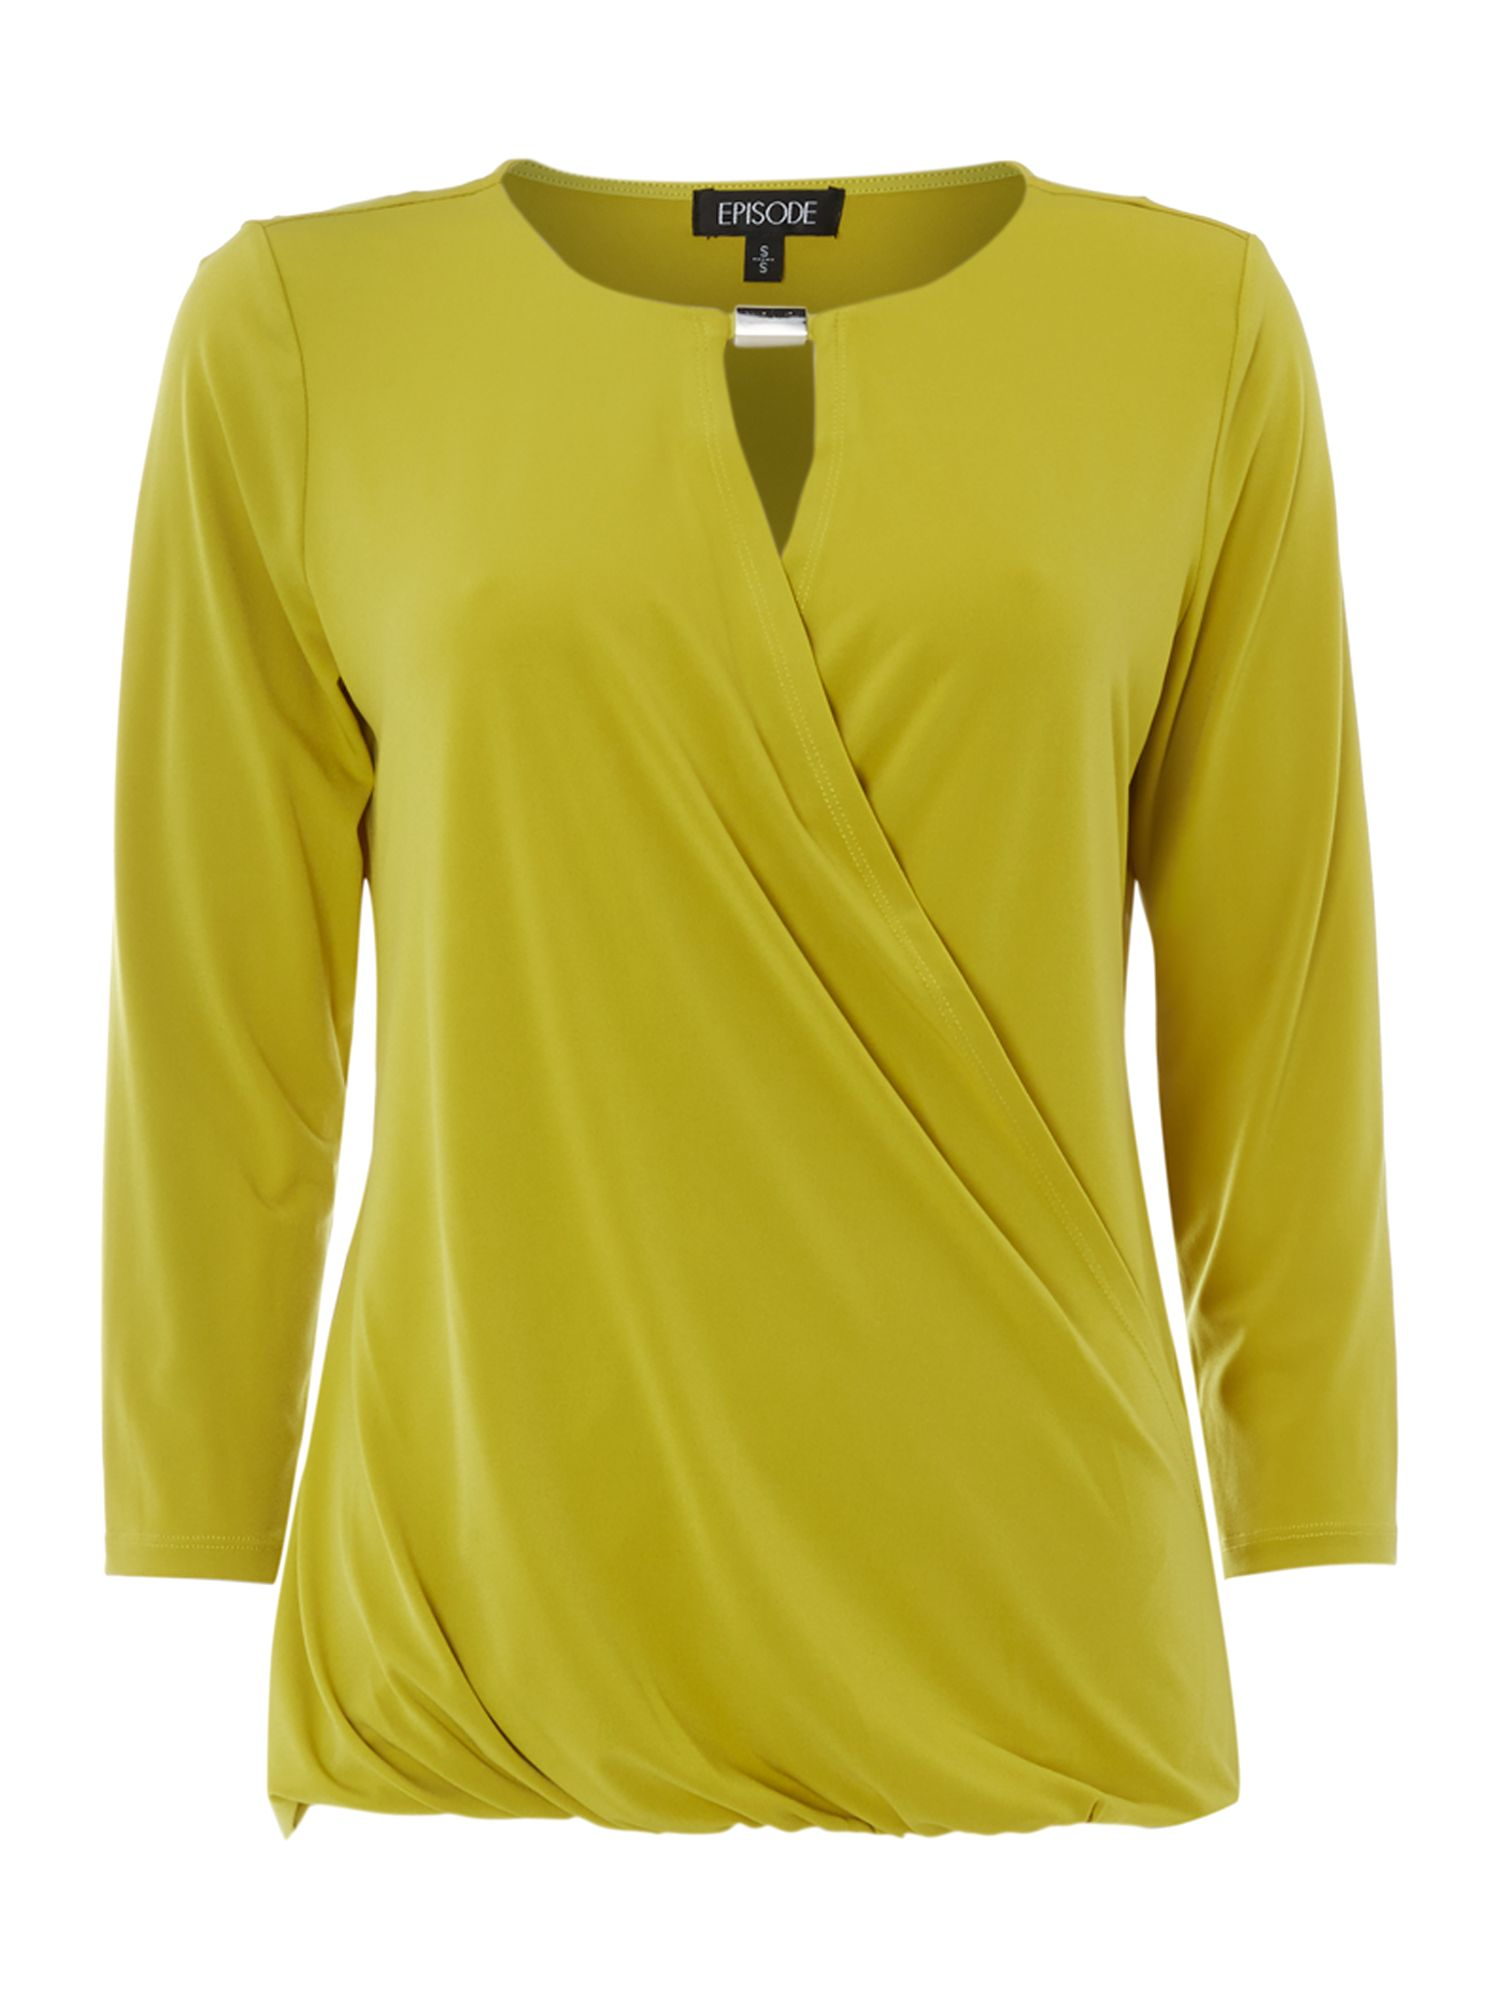 Long sleeve twist detail jersey top